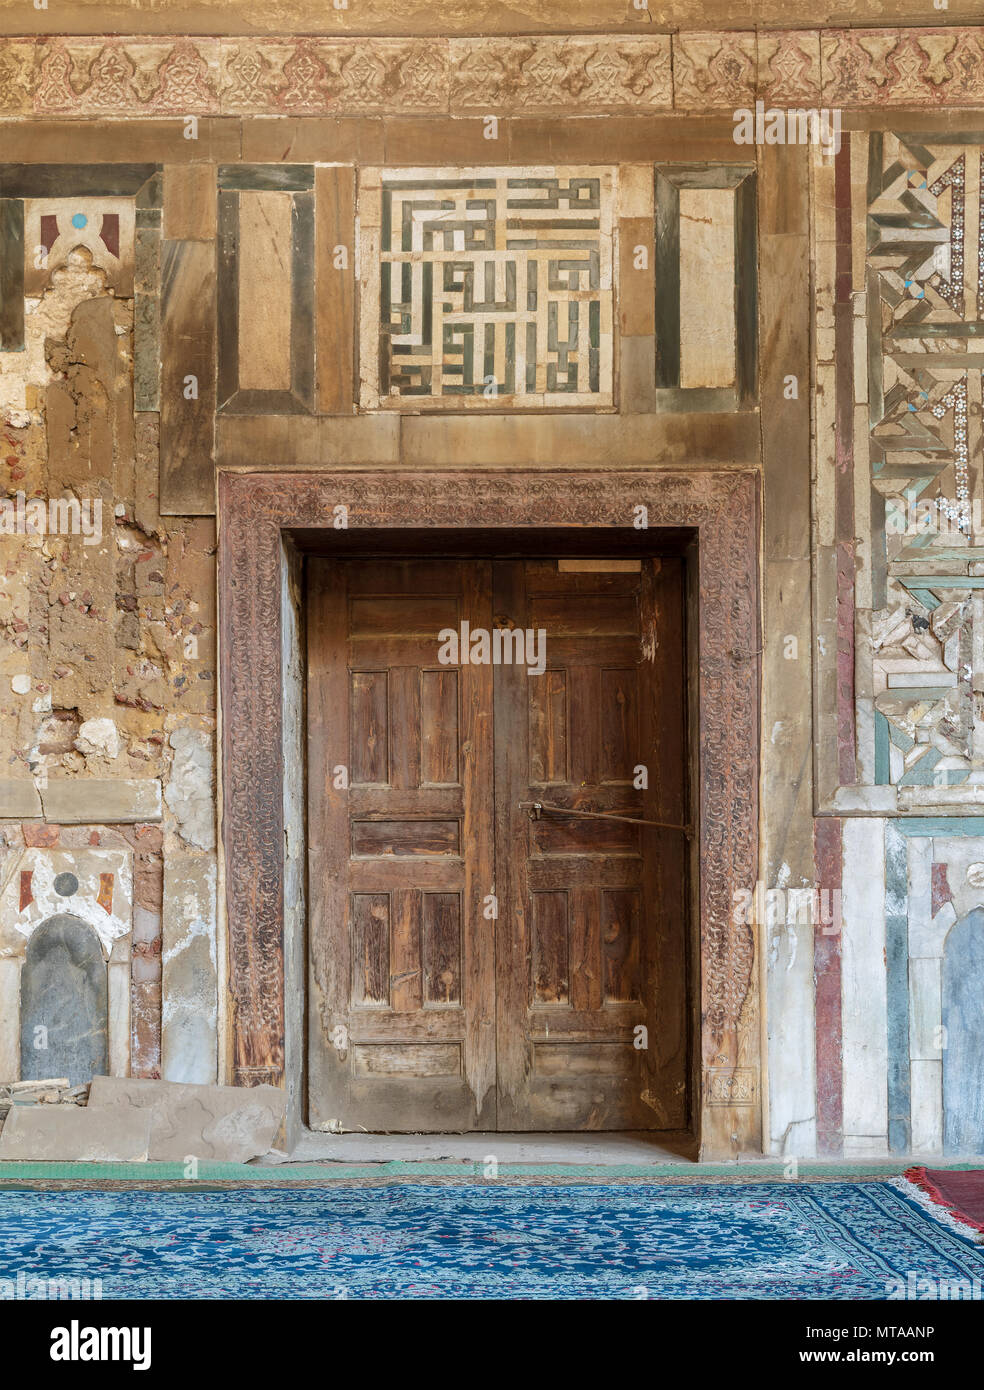 Grunge wooden decorated door on external old decorated marble wall, El Mardani Mosque, Cairo, Egypt - Stock Image